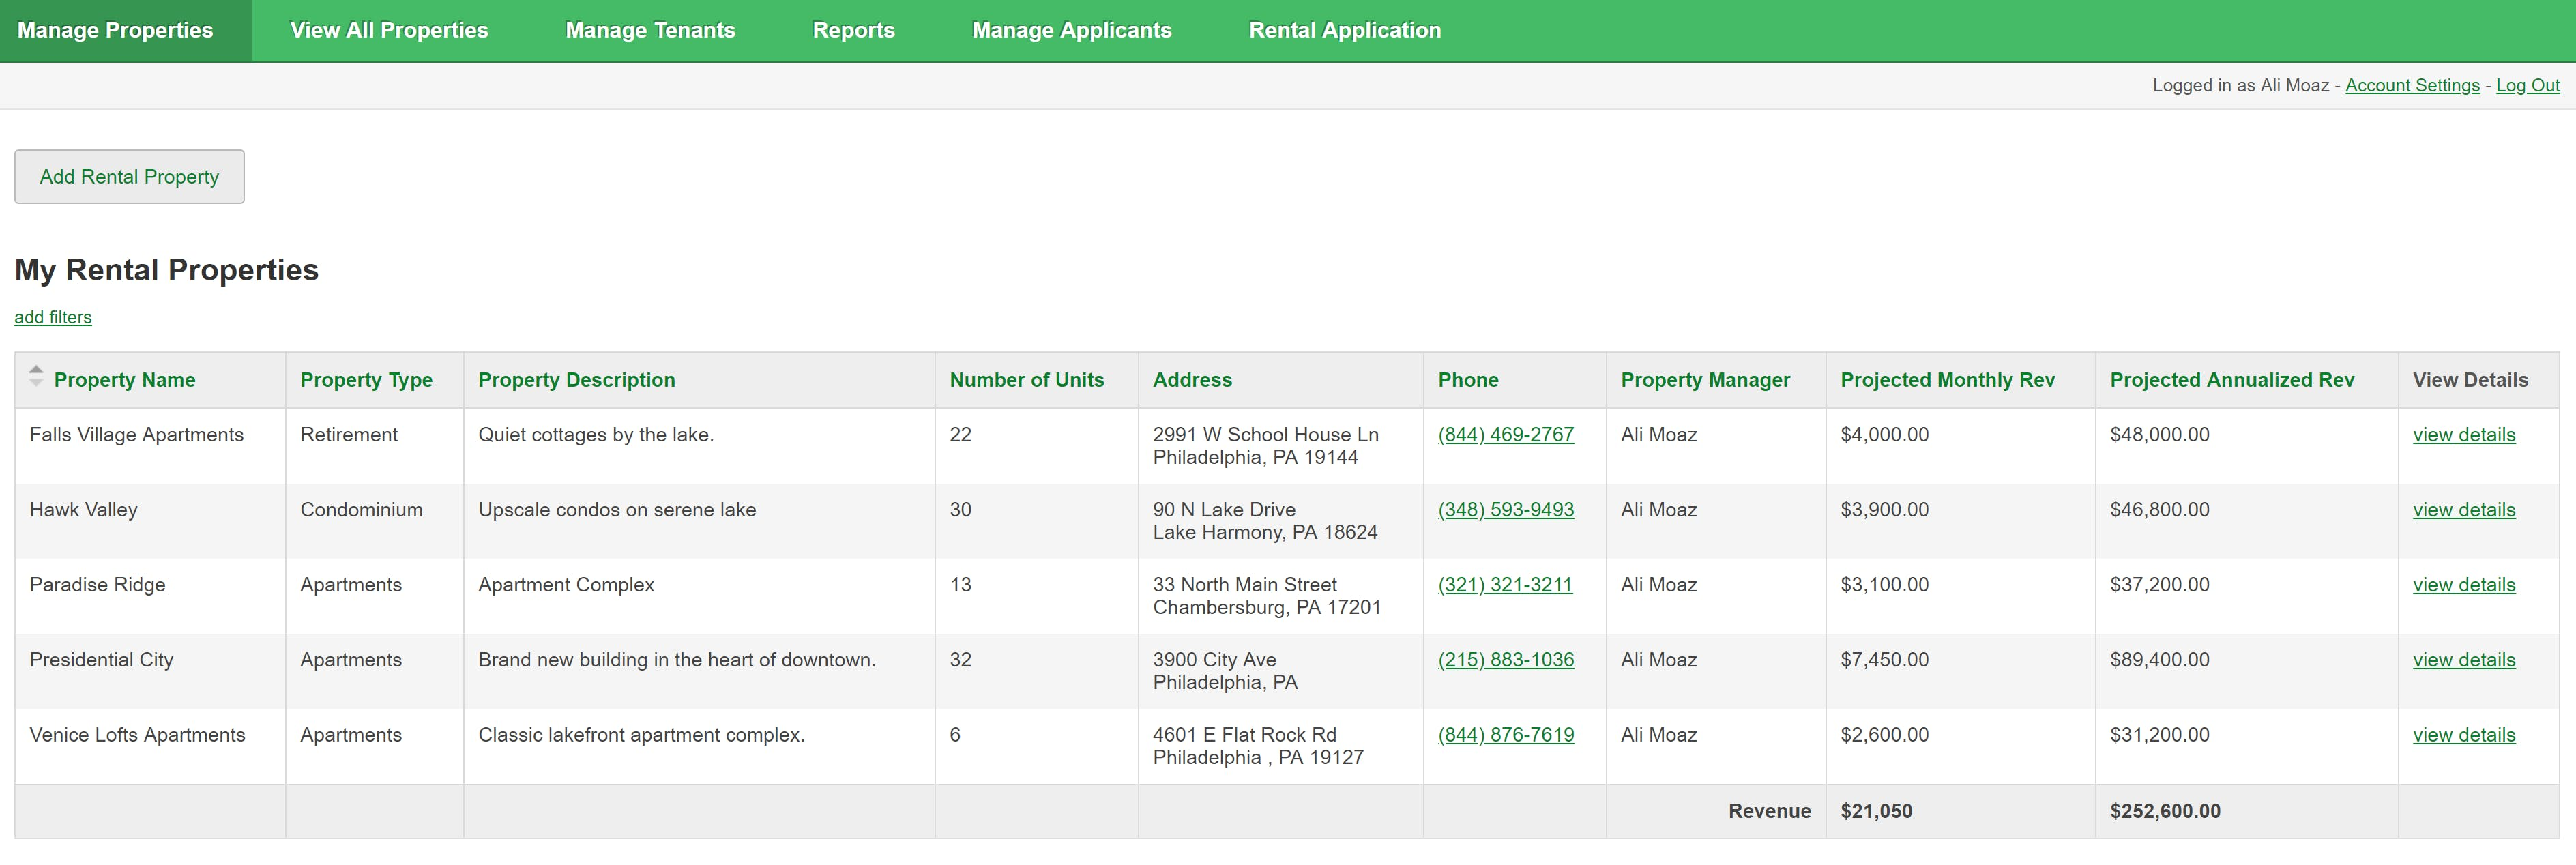 The property manager homepage displays each manager's properties. They can view key details and select a property to see the units.